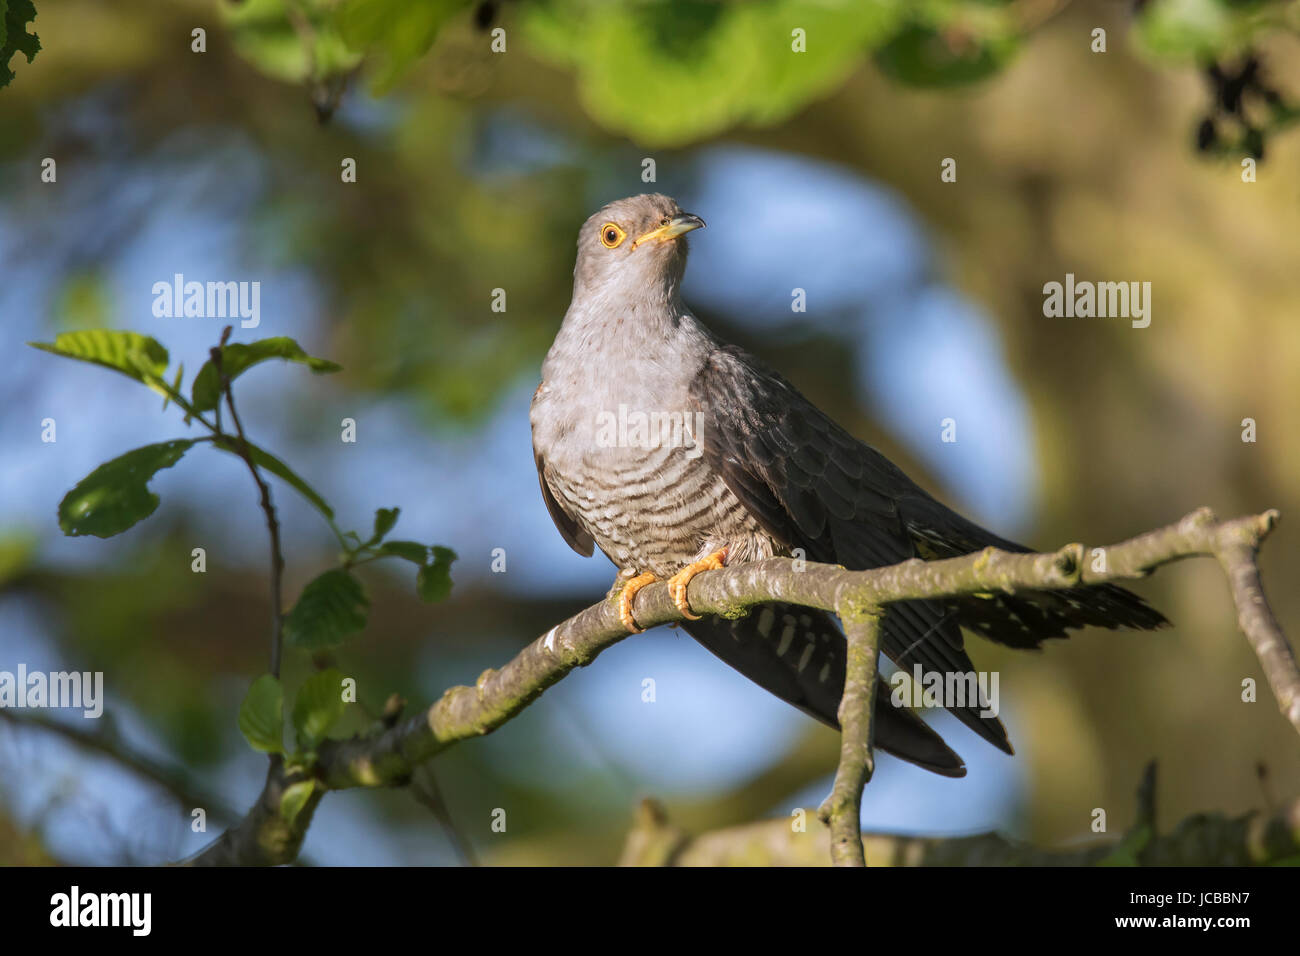 Common cuckoo (Cuculus canorus) male perched in tree in spring - Stock Image